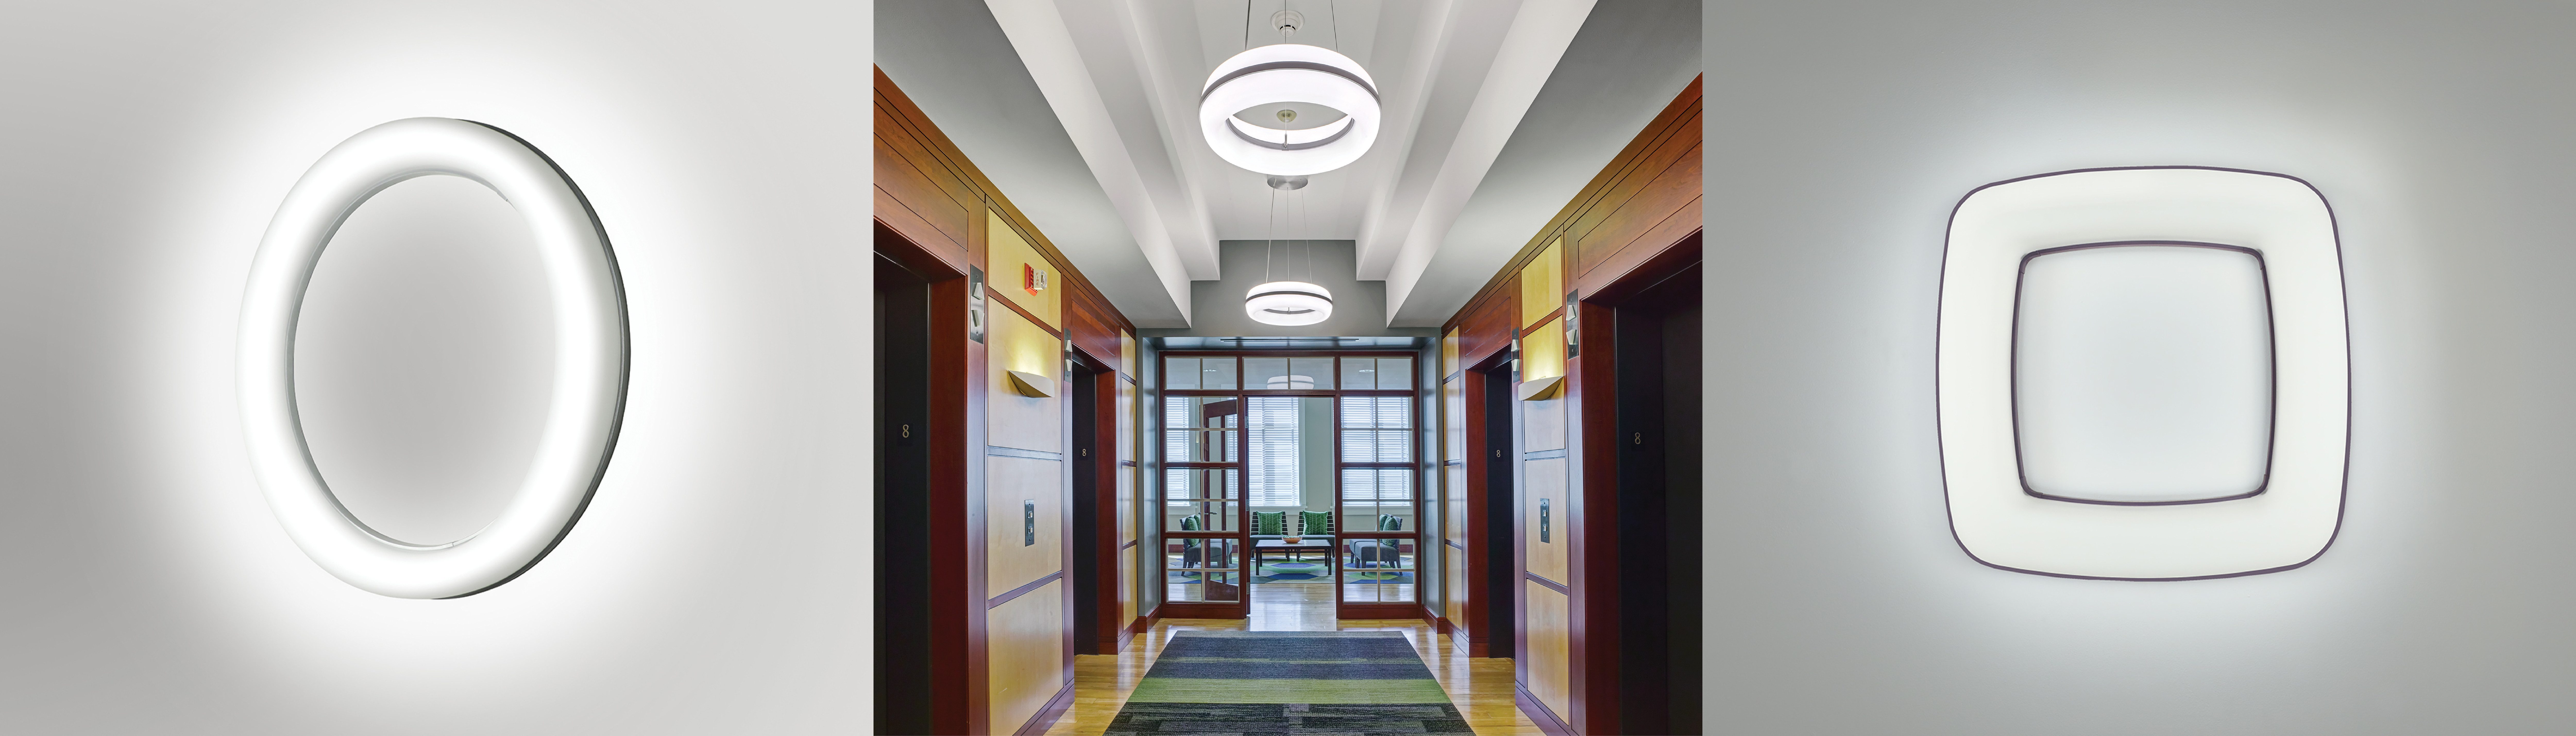 Large banner image showing the Meridian round wall sconce, ceiling mounted fixtures, pendants, and square surface mount